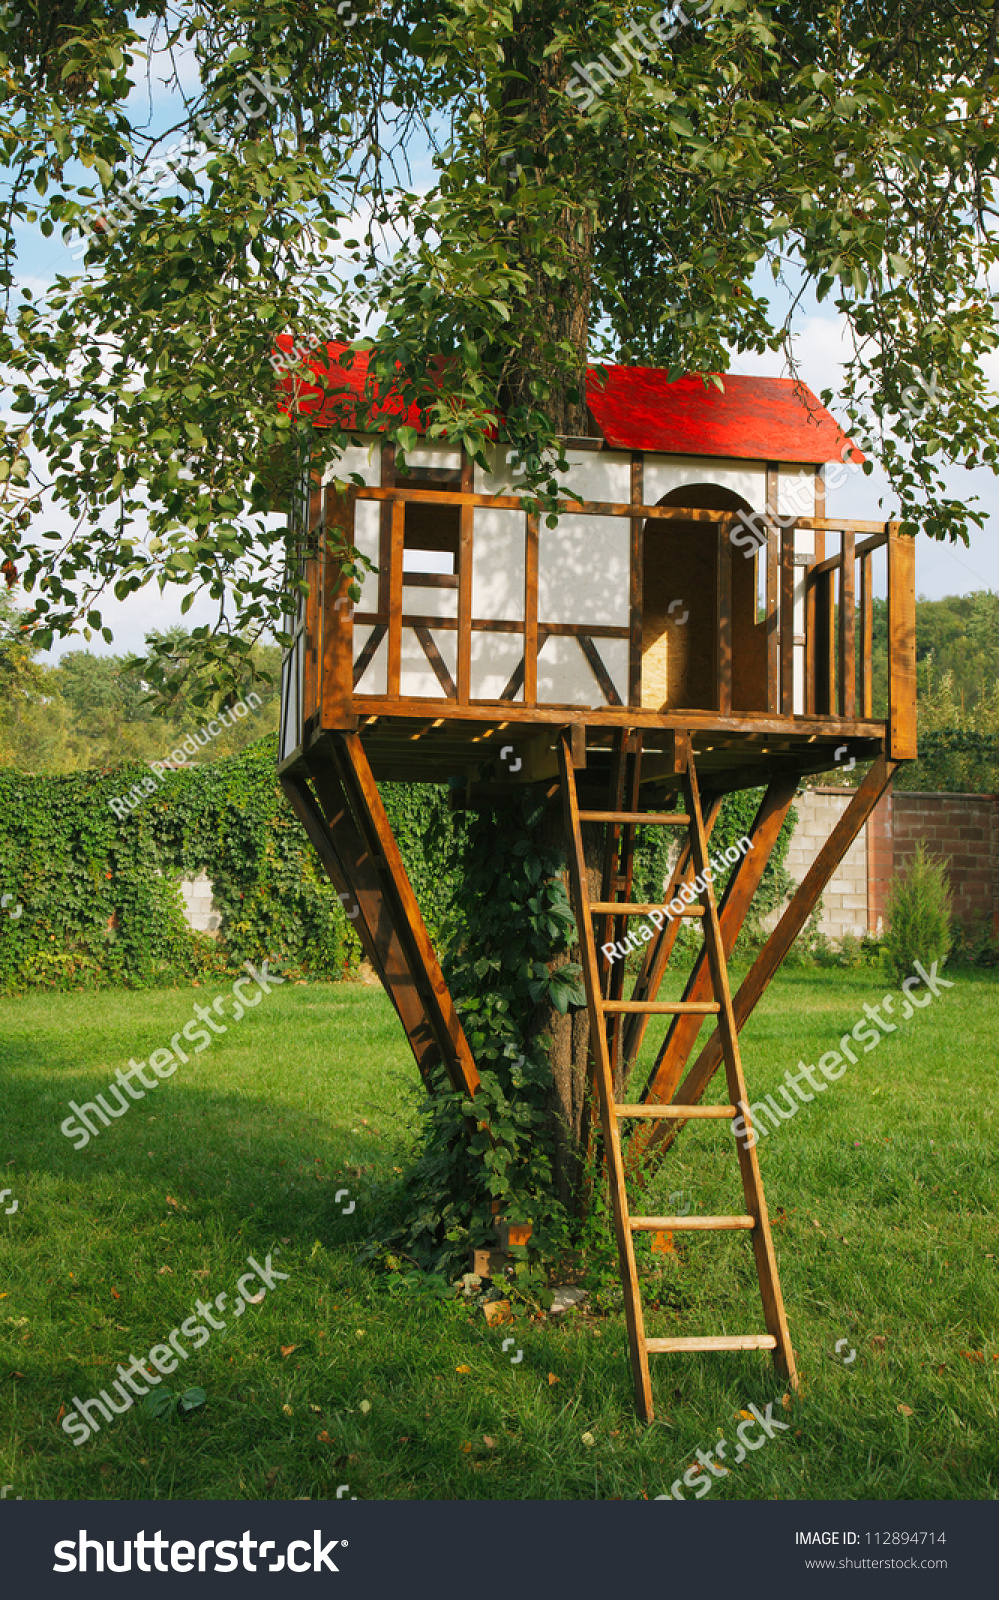 Cute Small Tree House Kids On Stock Photo 112894714